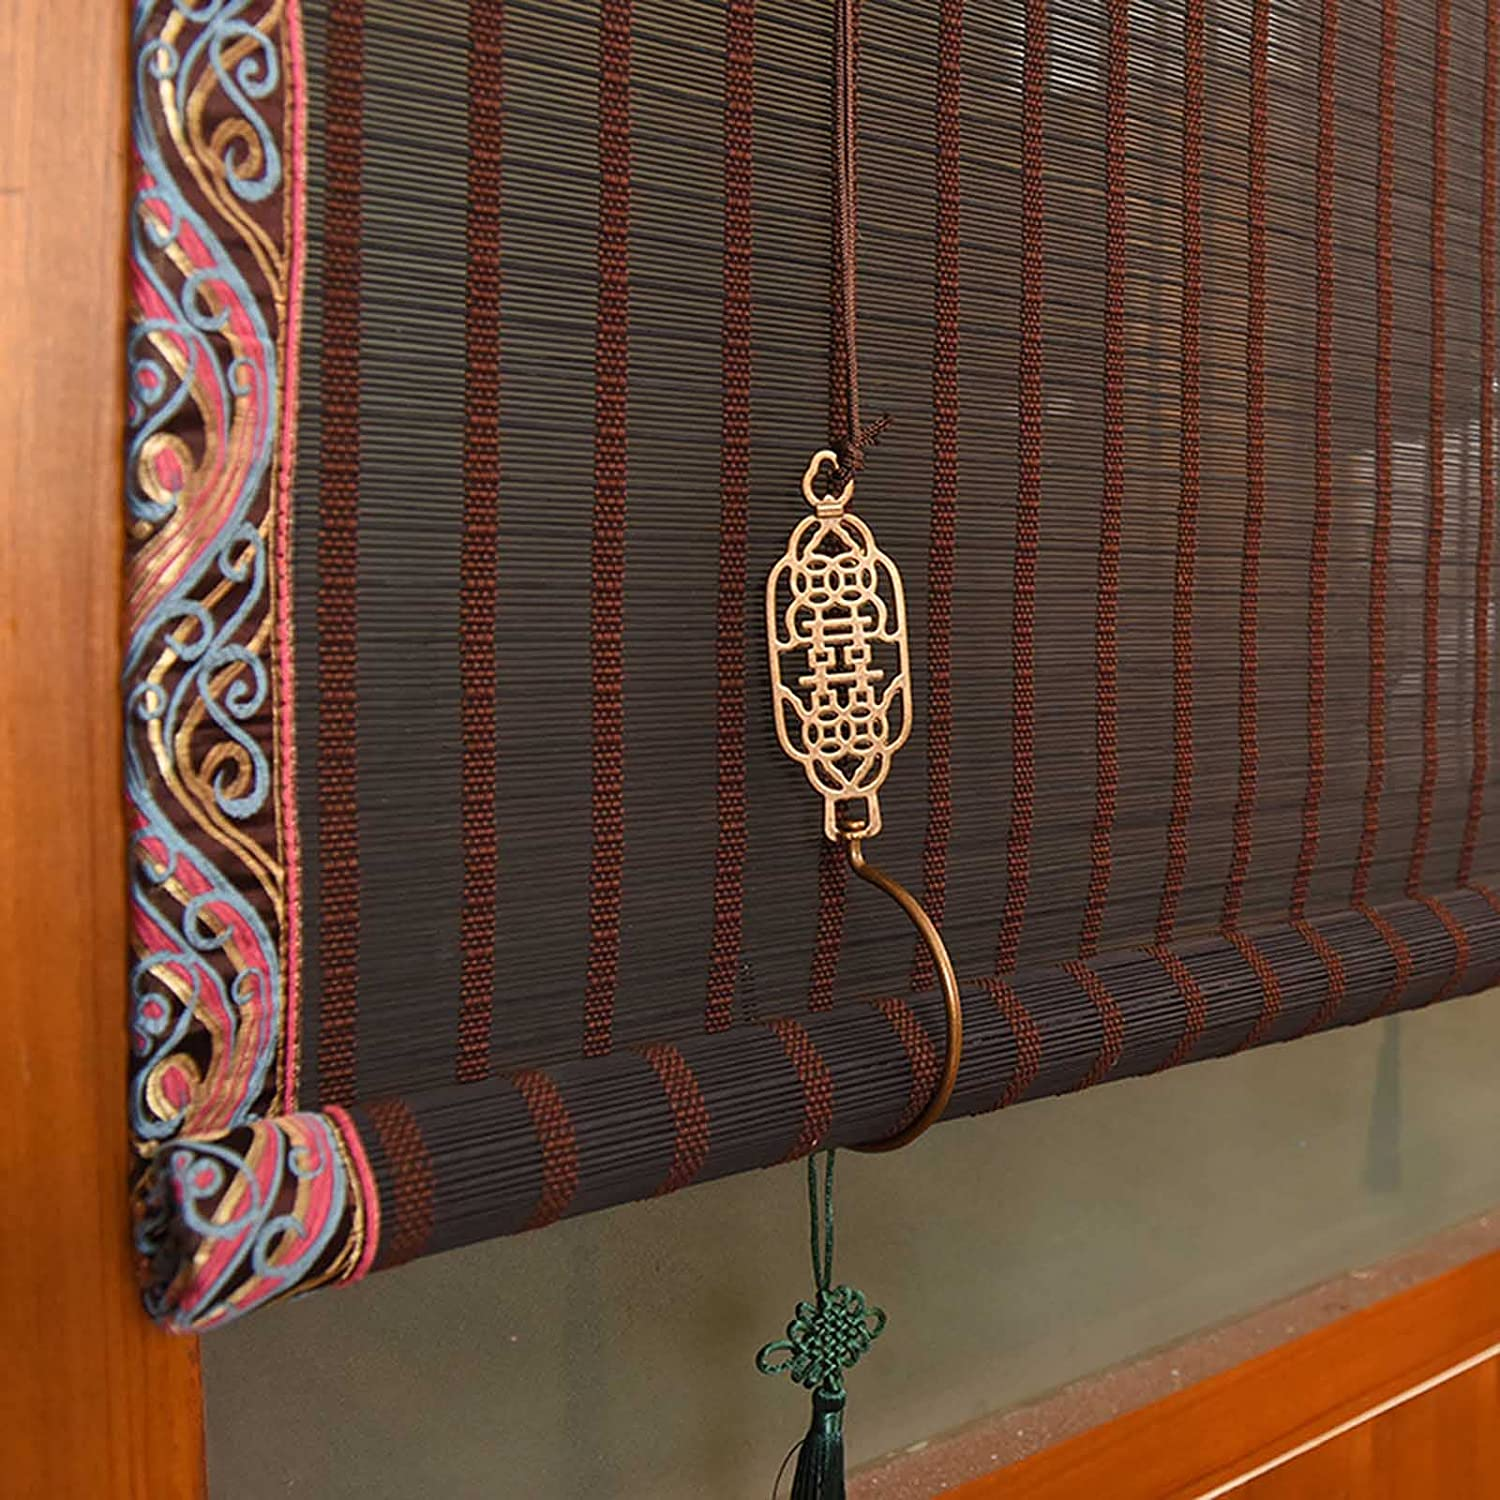 Bamboo Roller Blind Mail order bamboo with Super-cheap Blinds Windows for